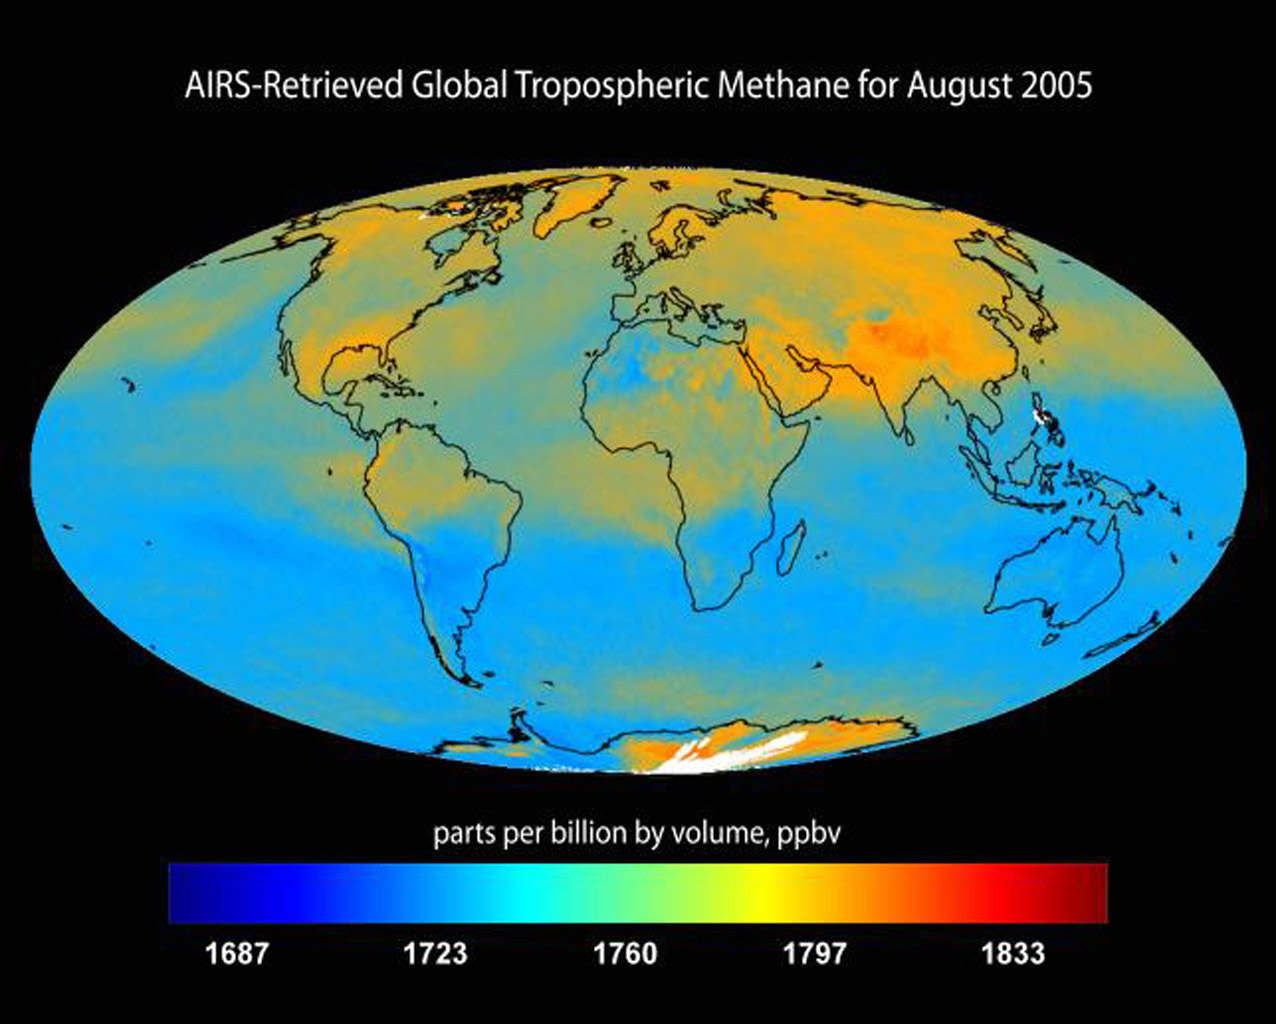 Global tropospheric methane for August 2005 retrieved from the Atmospheric Infrared Sounder (AIRS) instrument onboard NASA's Aqua satellite.